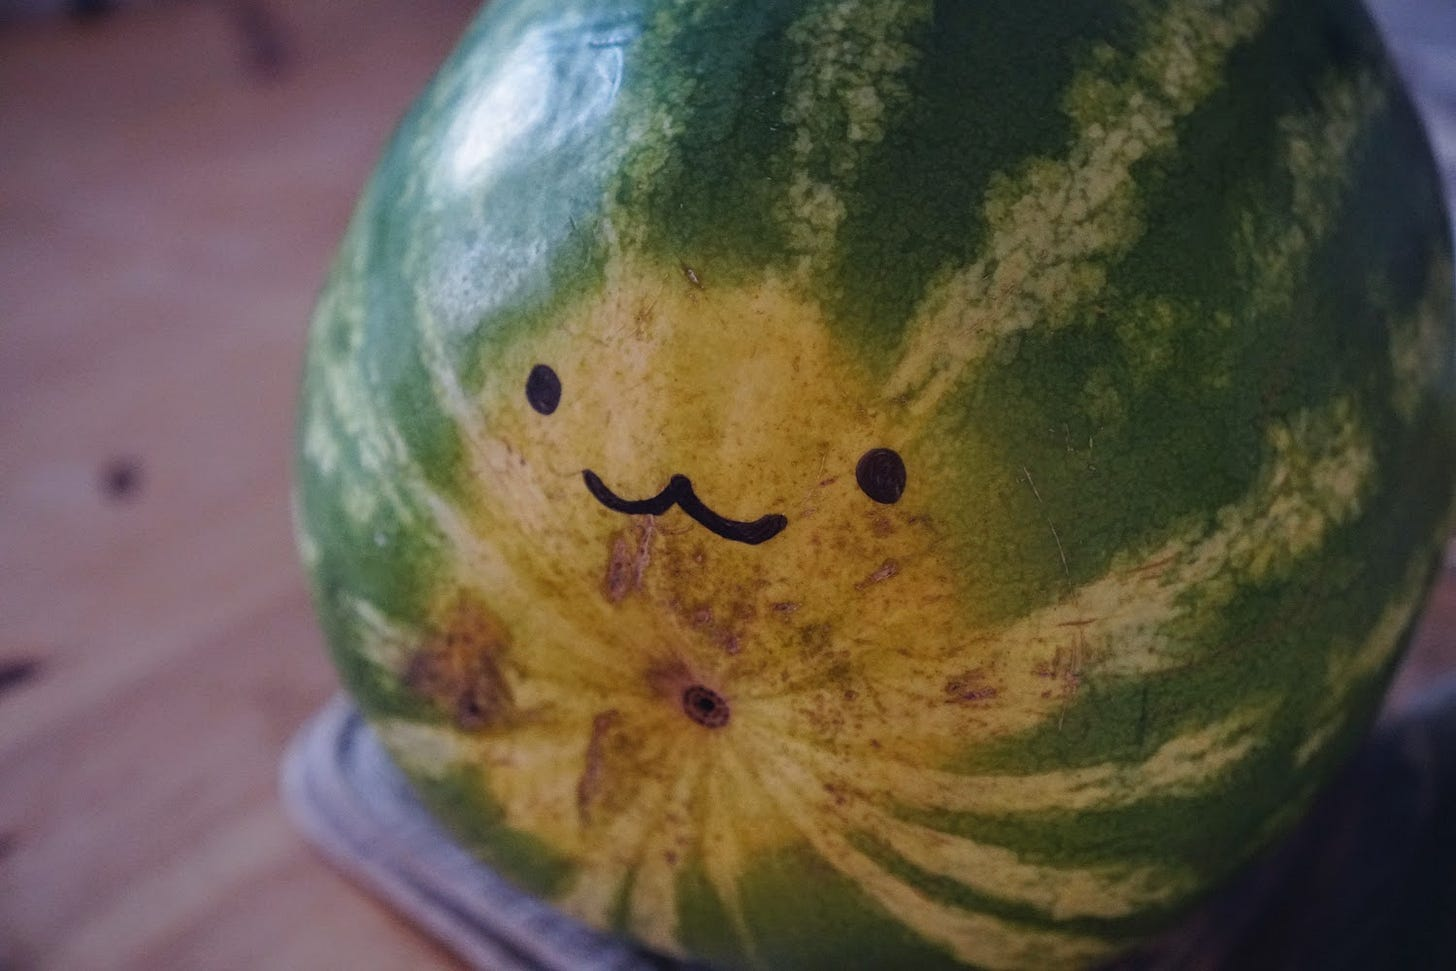 A watermelon with a face